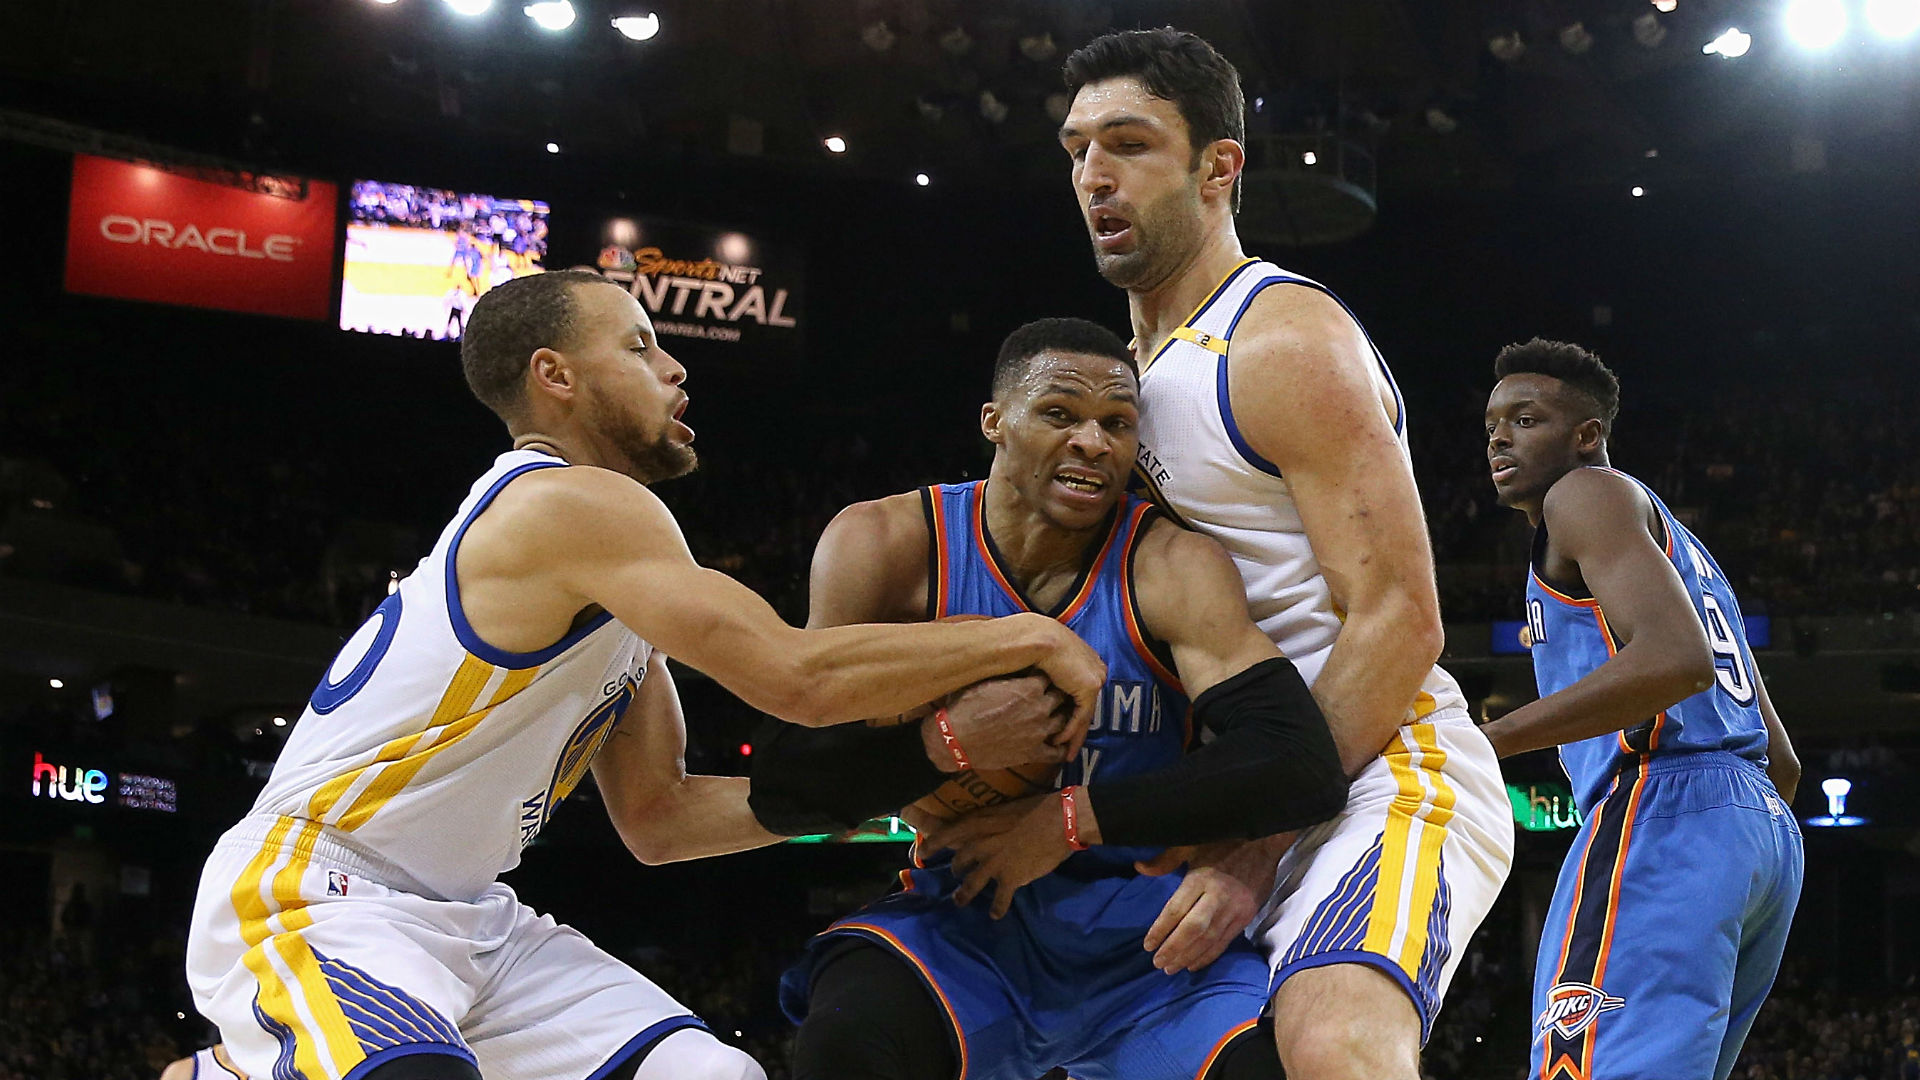 Russell Westbrook Calls Out Zaza Pachulia: 'He Tried to Hurt Me'